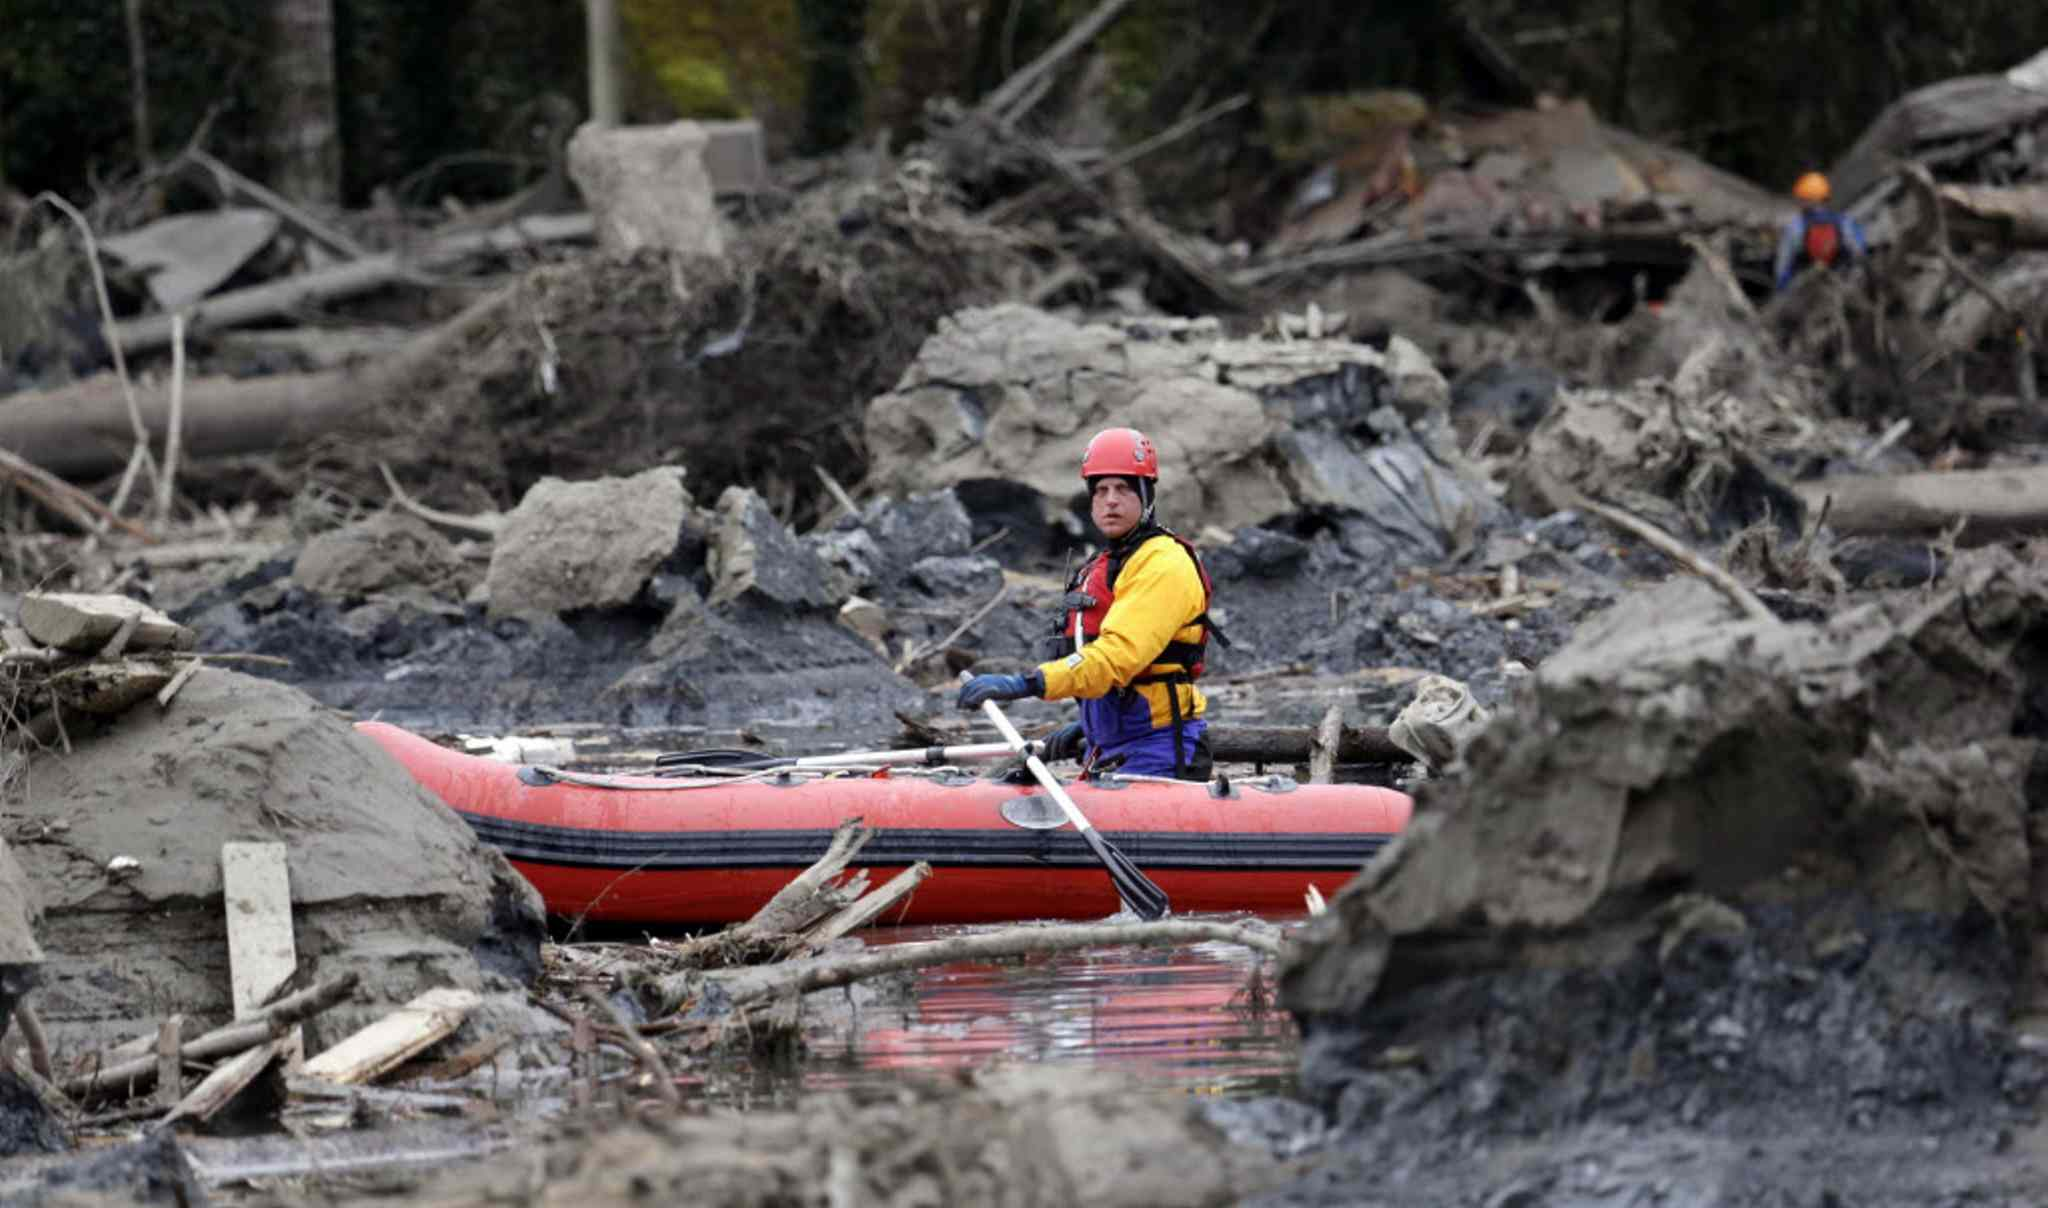 A searcher uses a small boat to look through debris from the deadly mudslide. At least 14 people were killed in the 1-square-mile slide that hit in a rural area about 55 miles northeast of Seattle on Saturday. Several people also were critically injured, and homes were destroyed.